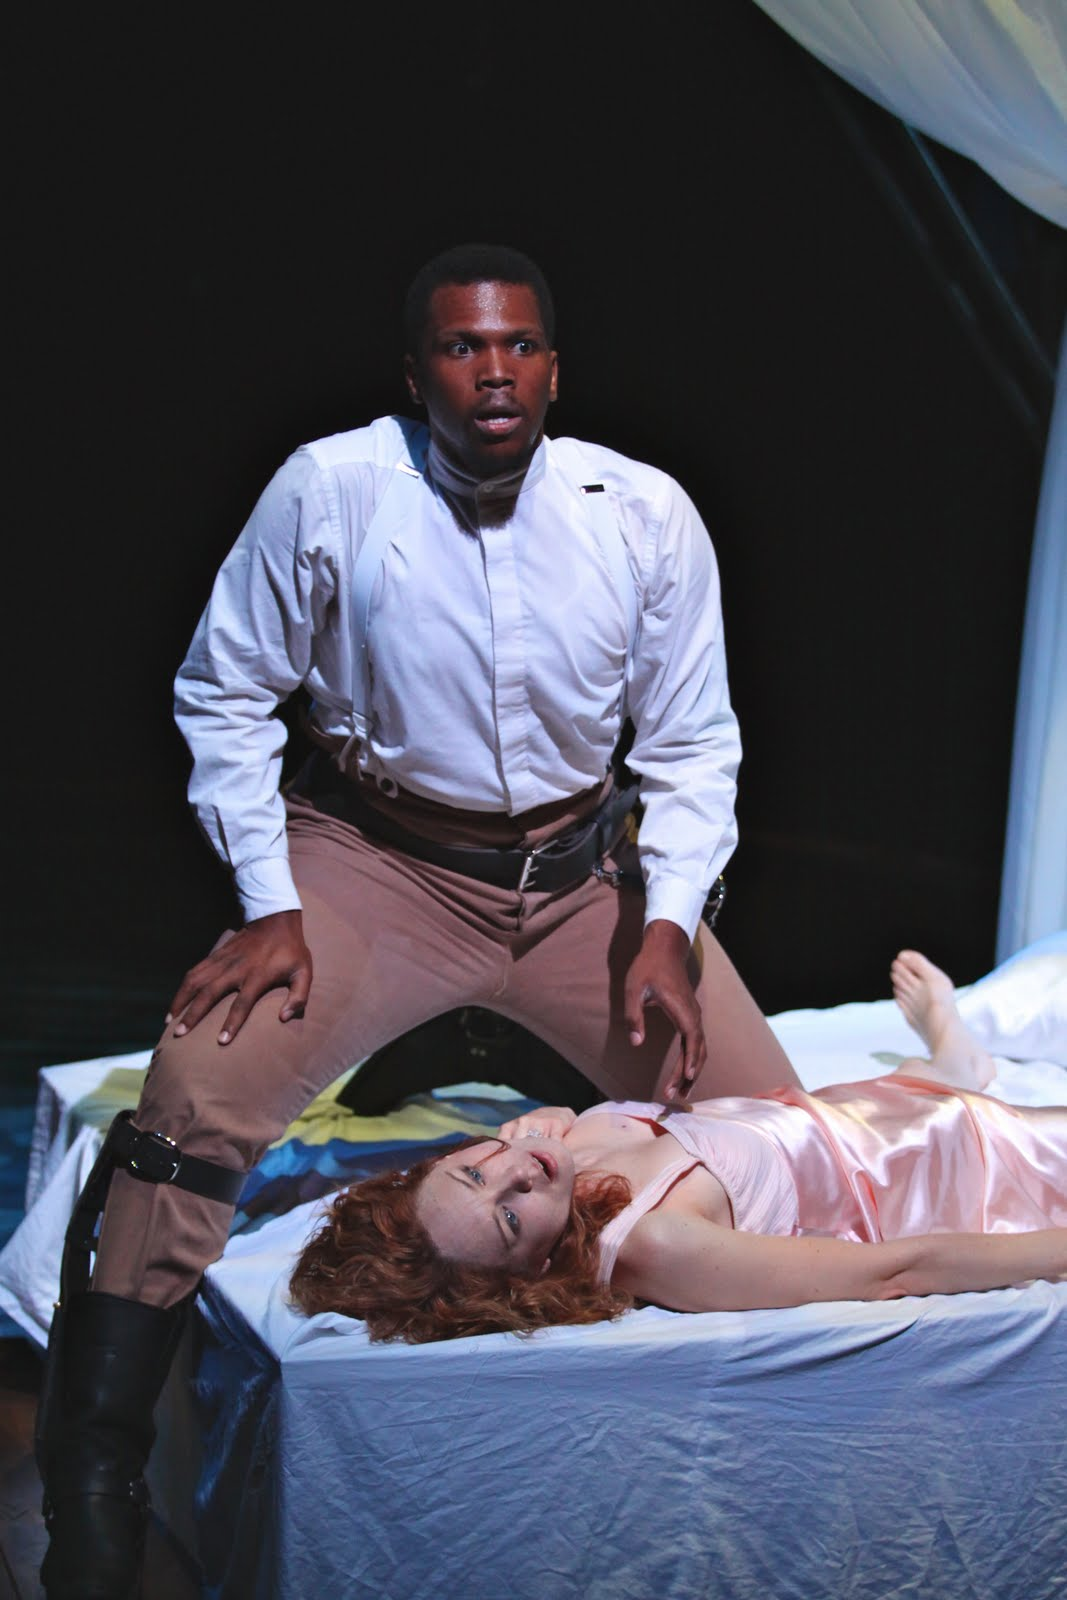 othello and reputation Othello reputation in the shakespearian play othello building and destroying reputations plays a vital role in the story progression without the ability to build a good reputation iago.